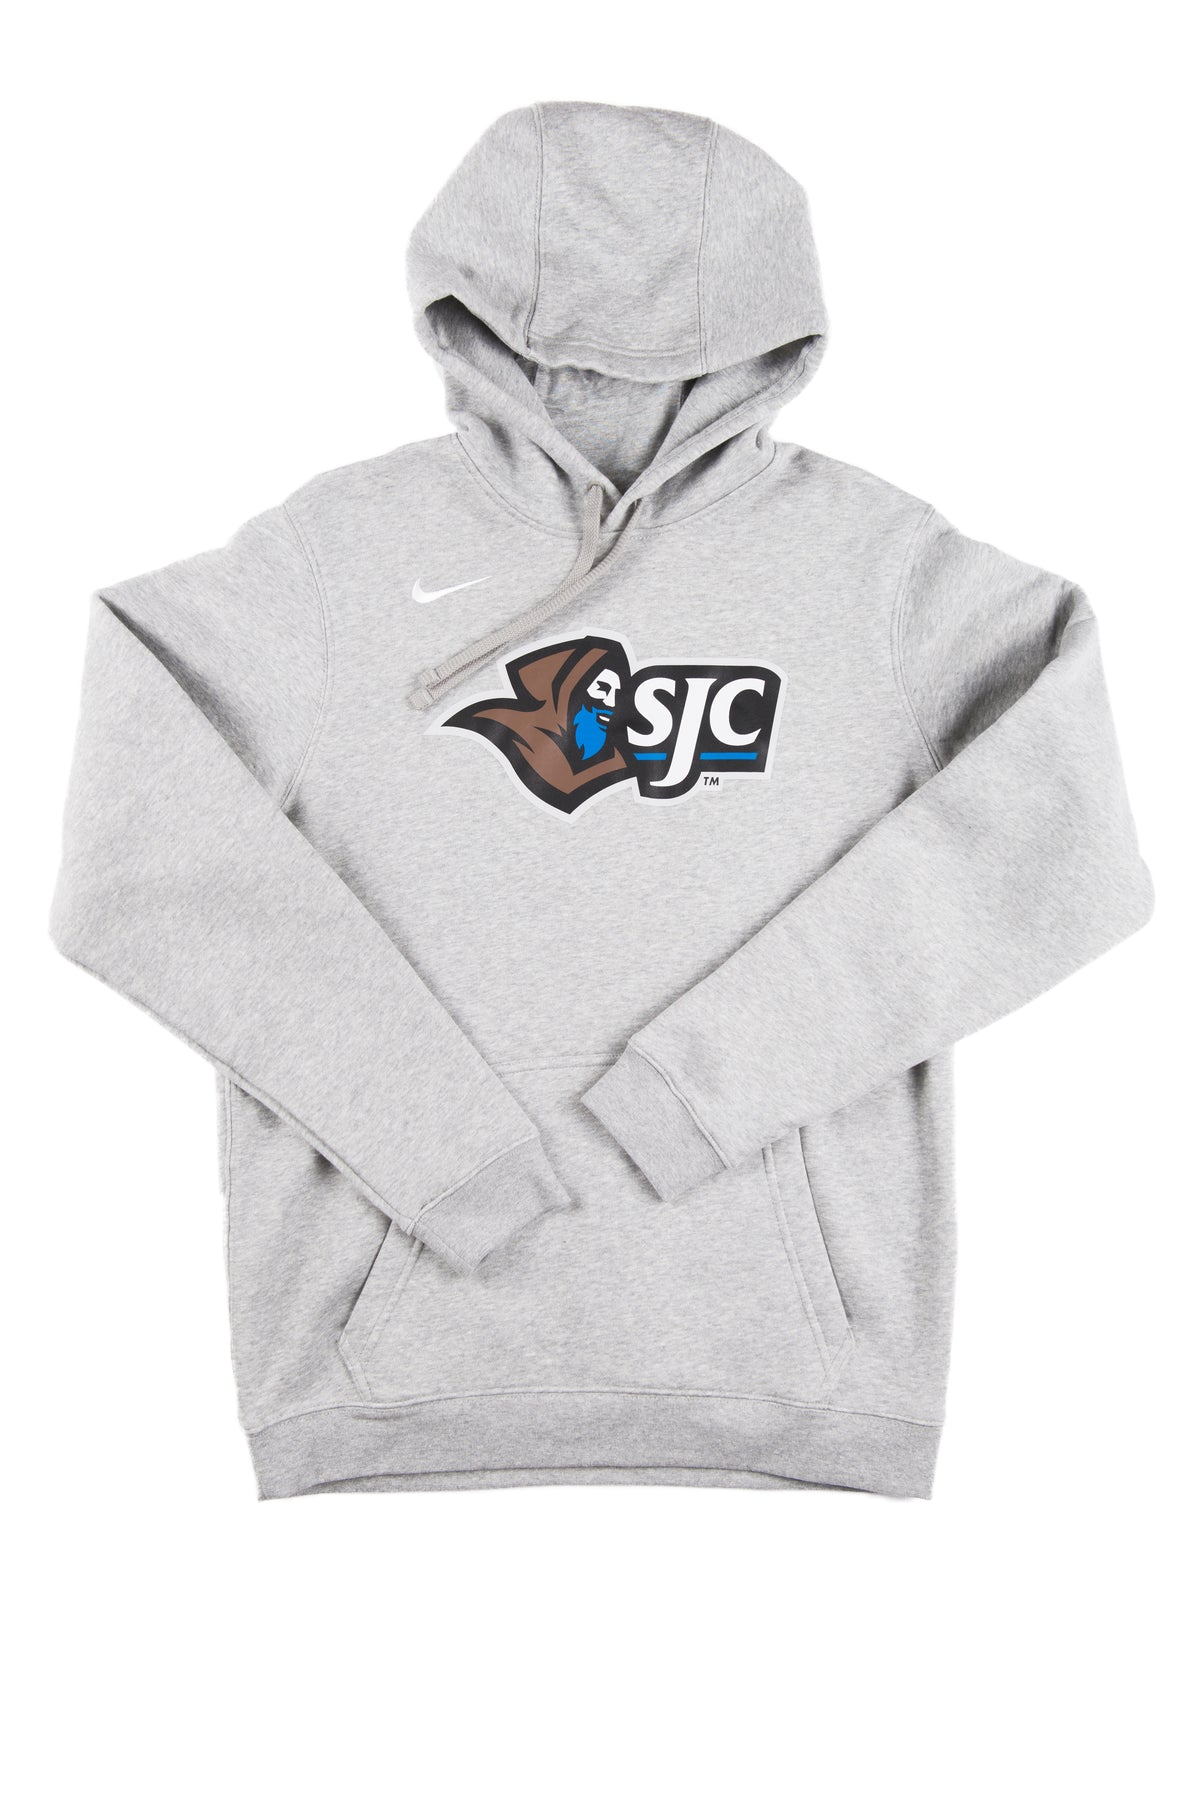 SJC with Monks Head Nike Hoodie